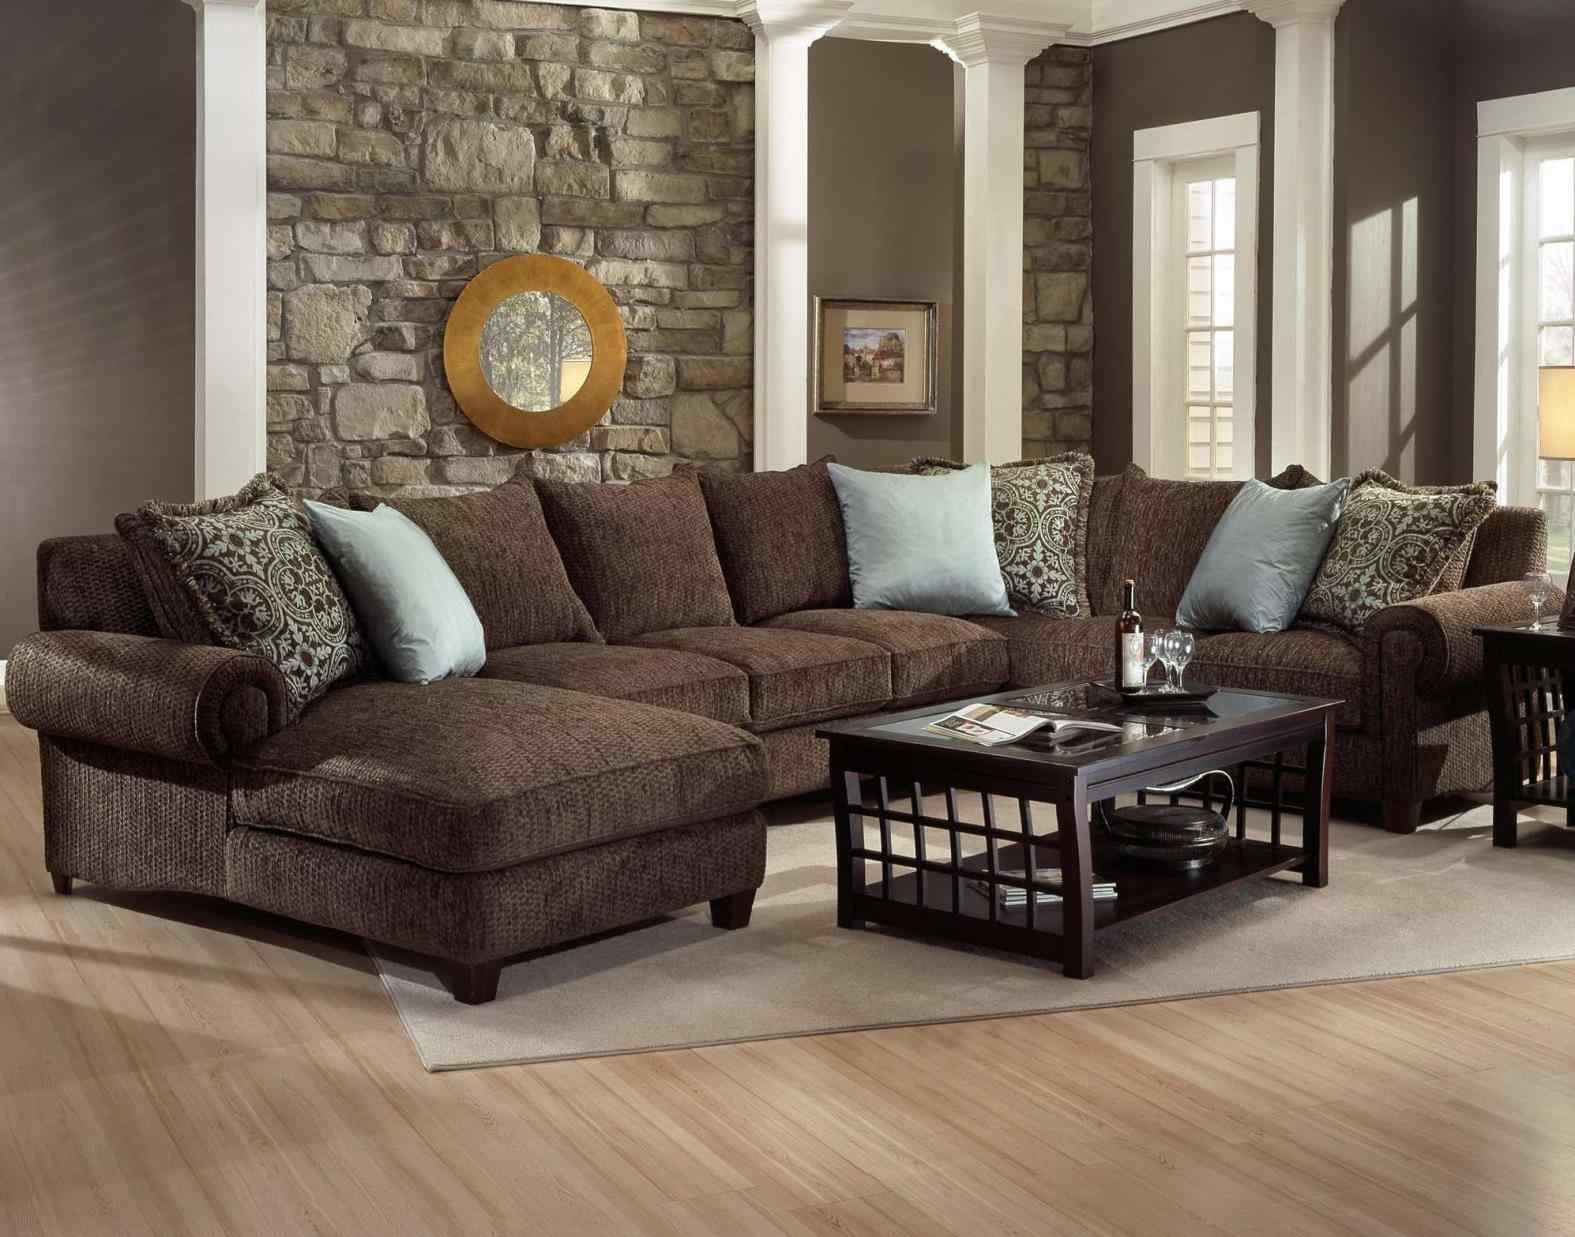 Down Filled Sofas And Sectionals | Chair And Sofa Intended For Down Filled Sofas And Sectionals (View 7 of 15)